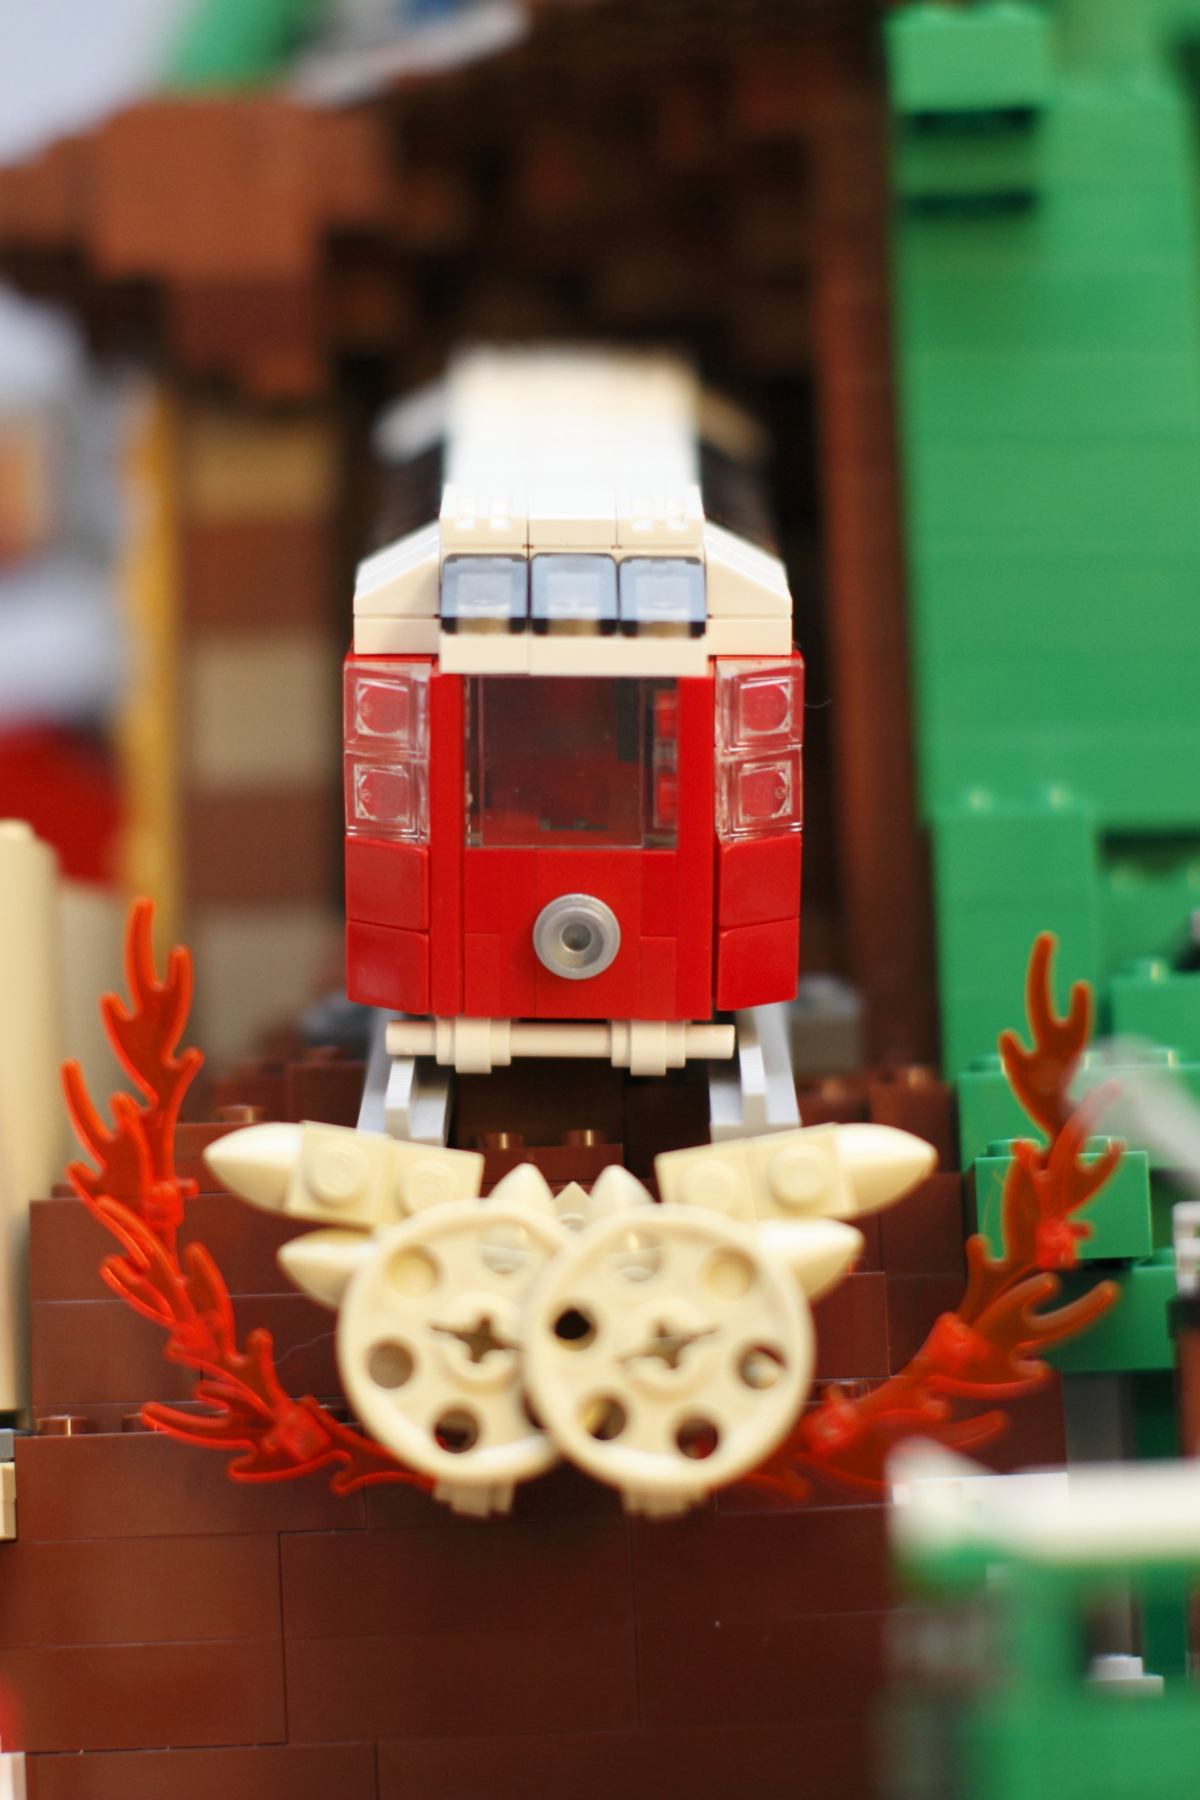 lego2010-ck-highlight-1s.jpg